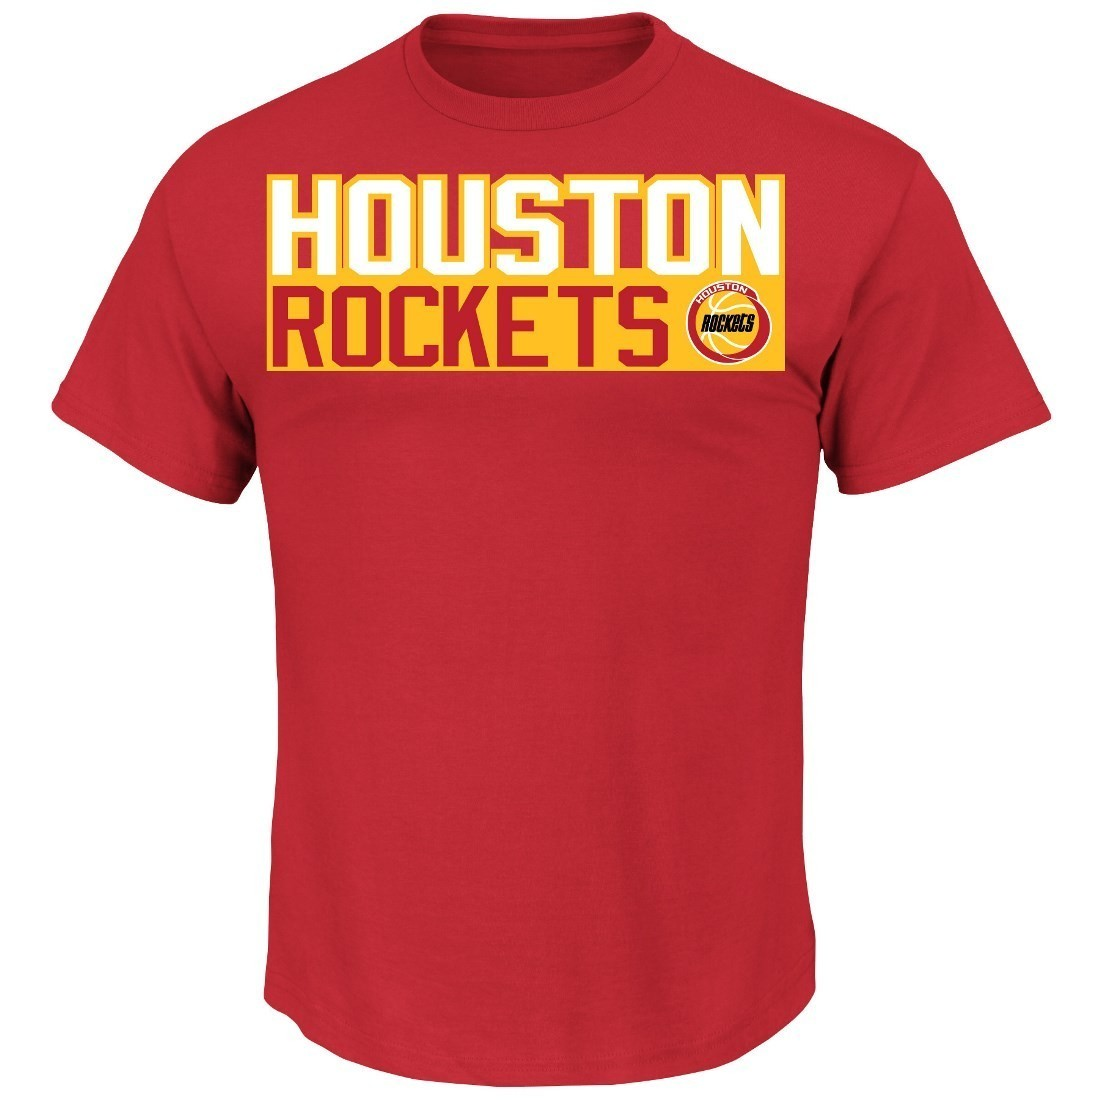 Hakeem Olajuwon Houston Rockets Majestic Nba Custom